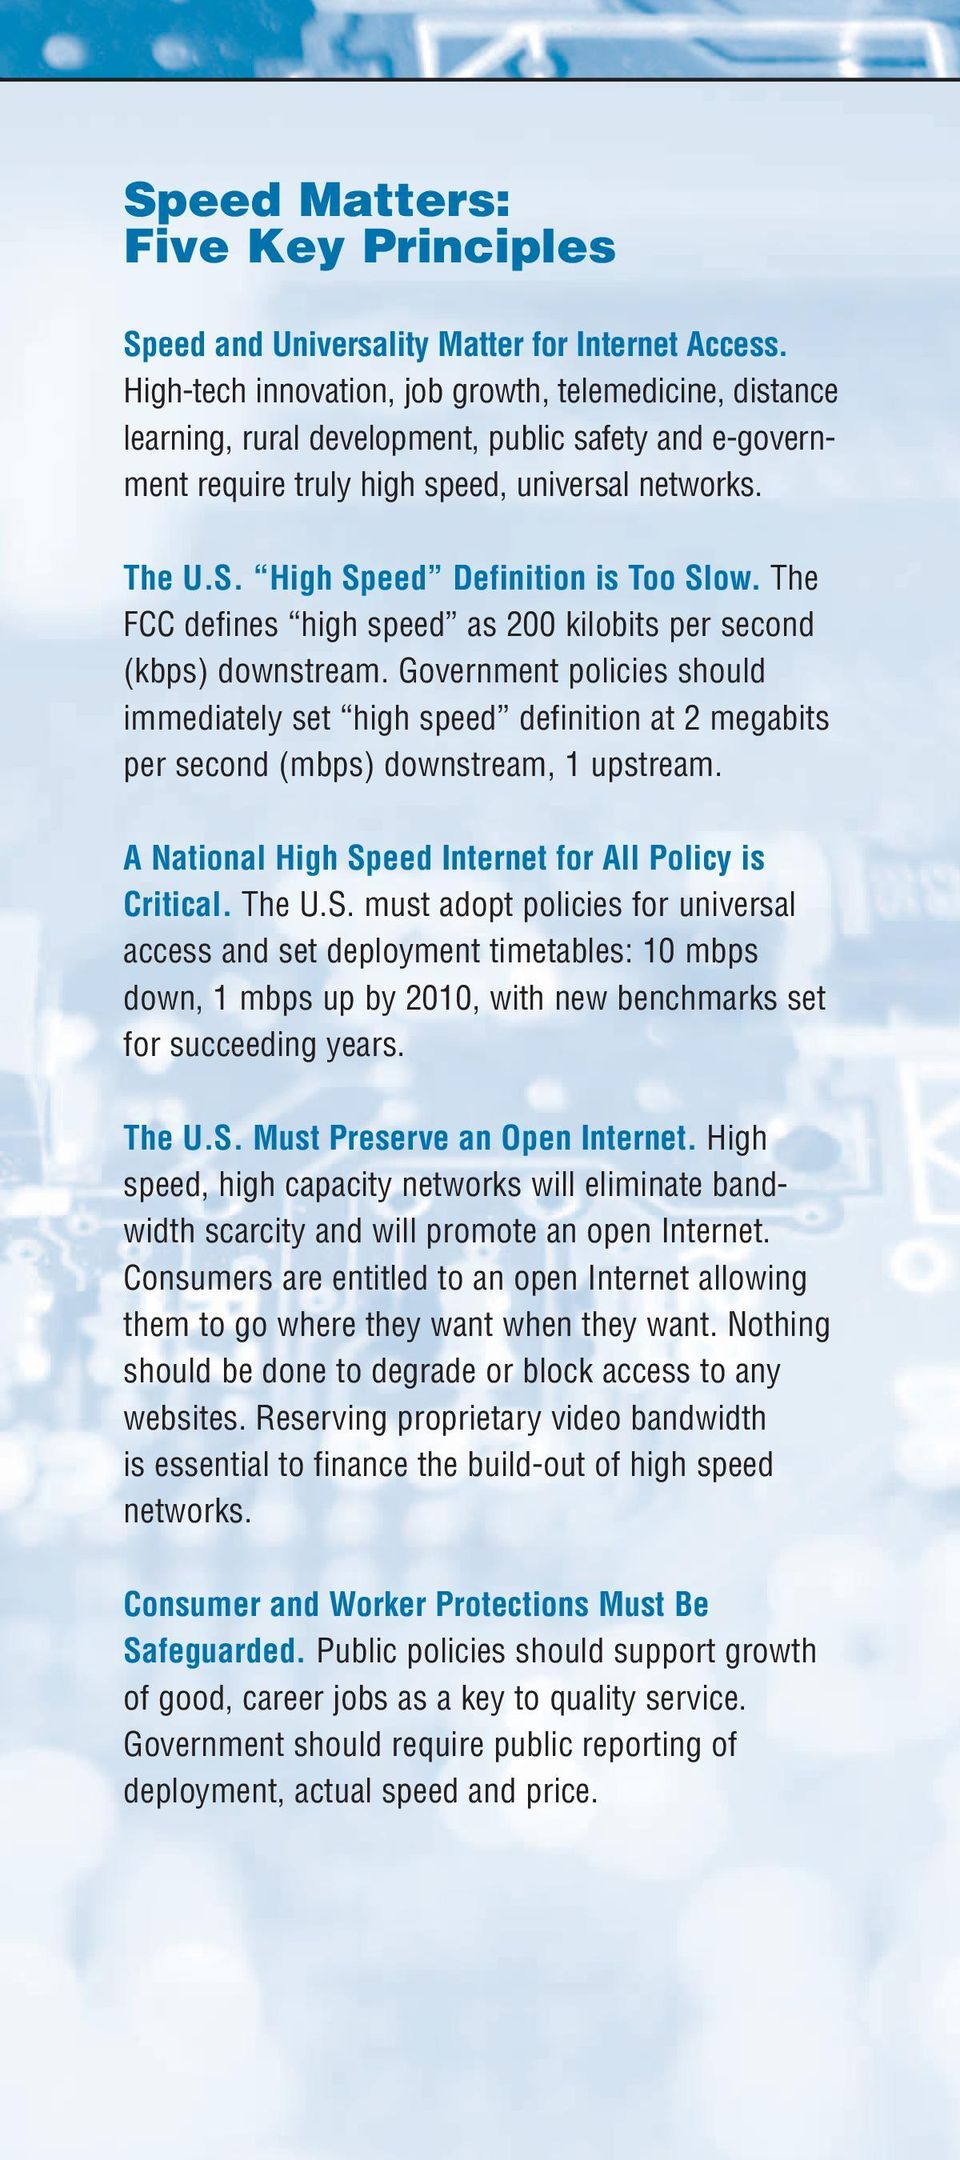 High Speed Definition is Too Slow. The FCC defines high speed as 200 kilobits per second (kbps) downstream.